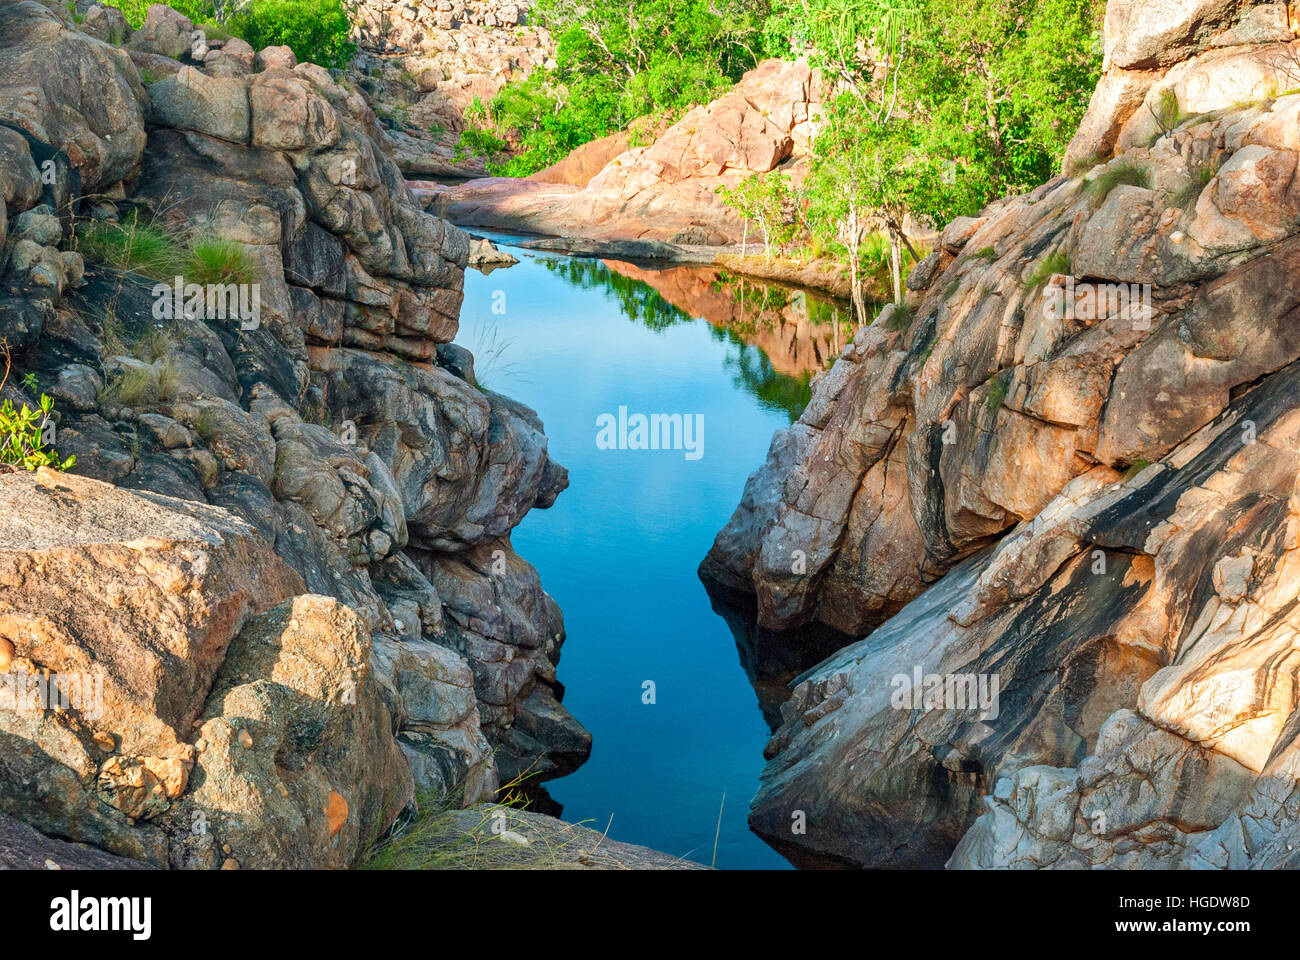 Kakadu National Park (Northern Territory Australia) landscape near Gunlom lookout - Stock Image